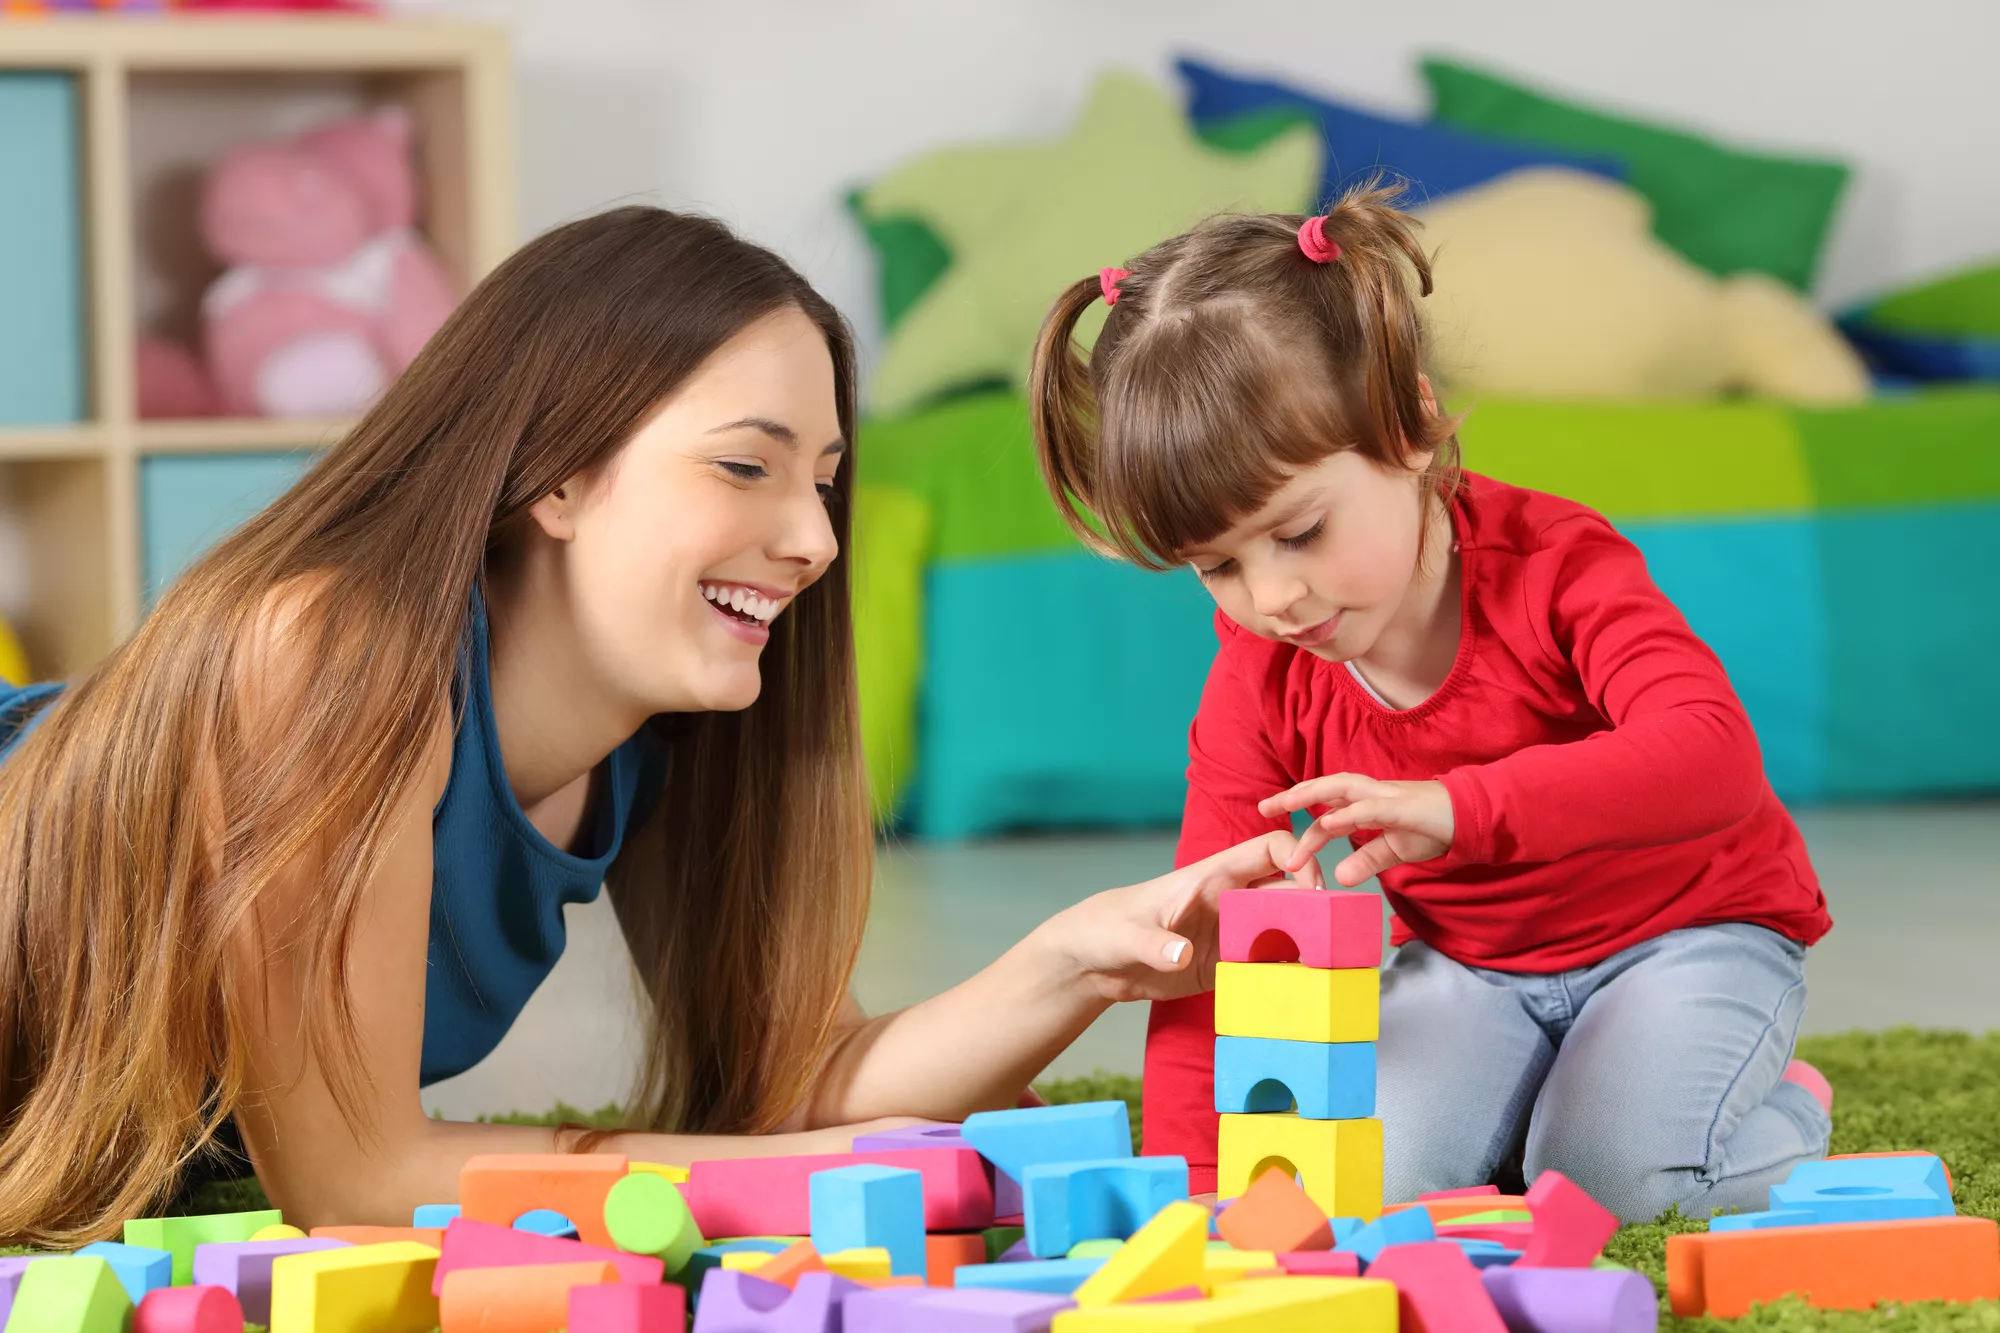 Top 5 Babysitting Apps for Finding Babysitter Jobs Near You